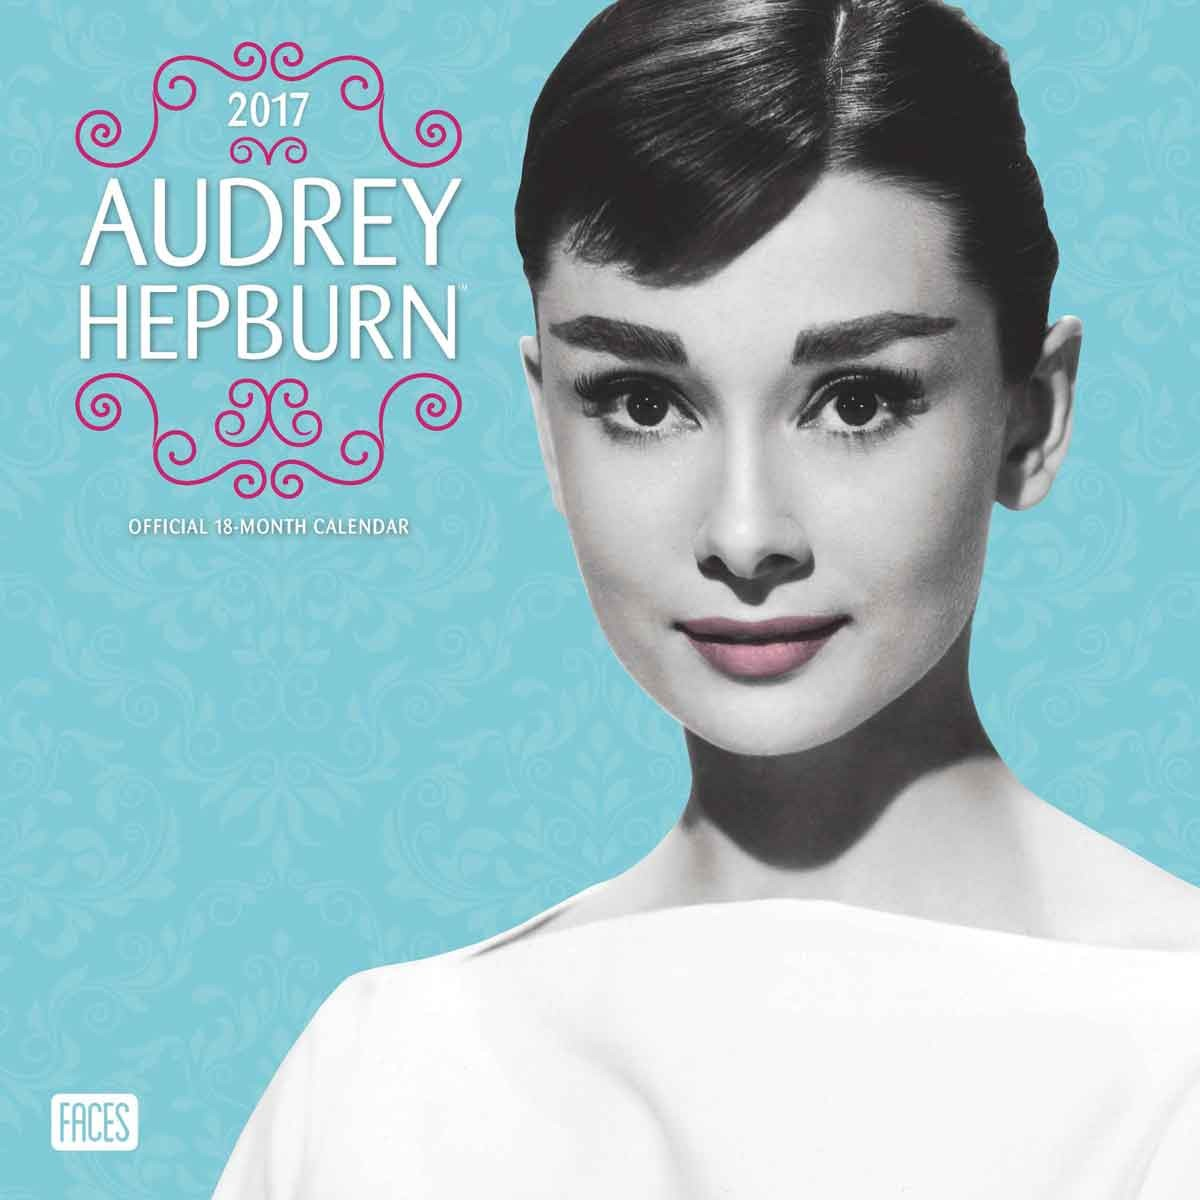 audrey hepburn calendars 2018 on europosters. Black Bedroom Furniture Sets. Home Design Ideas